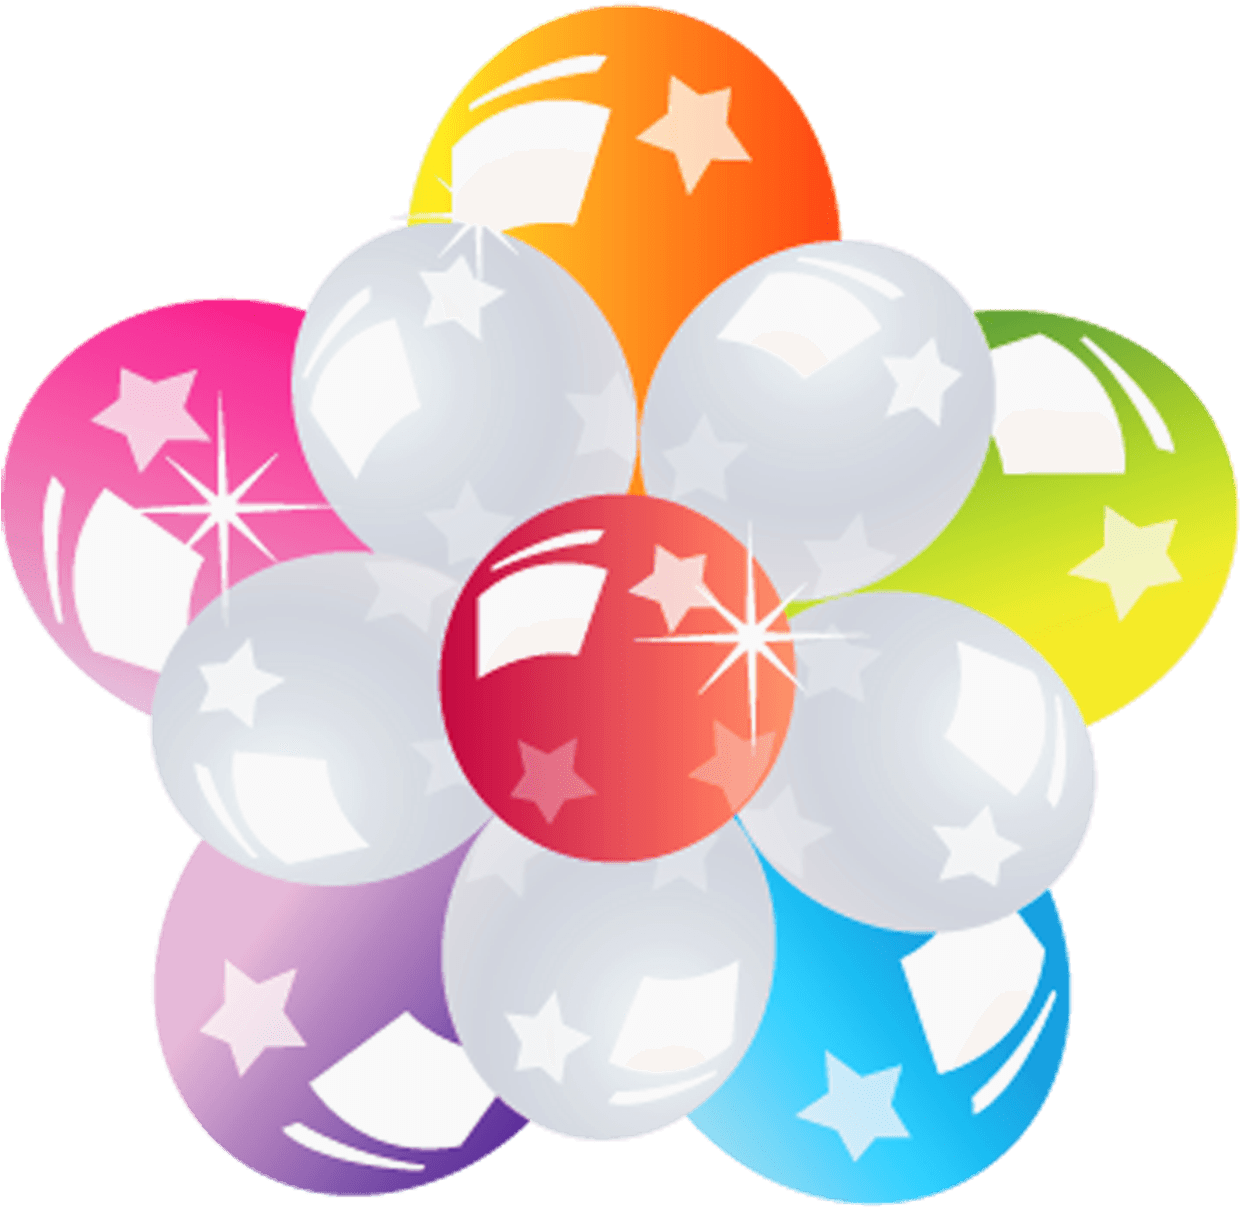 Clipart balloons transparent background. Flower of png stickpng